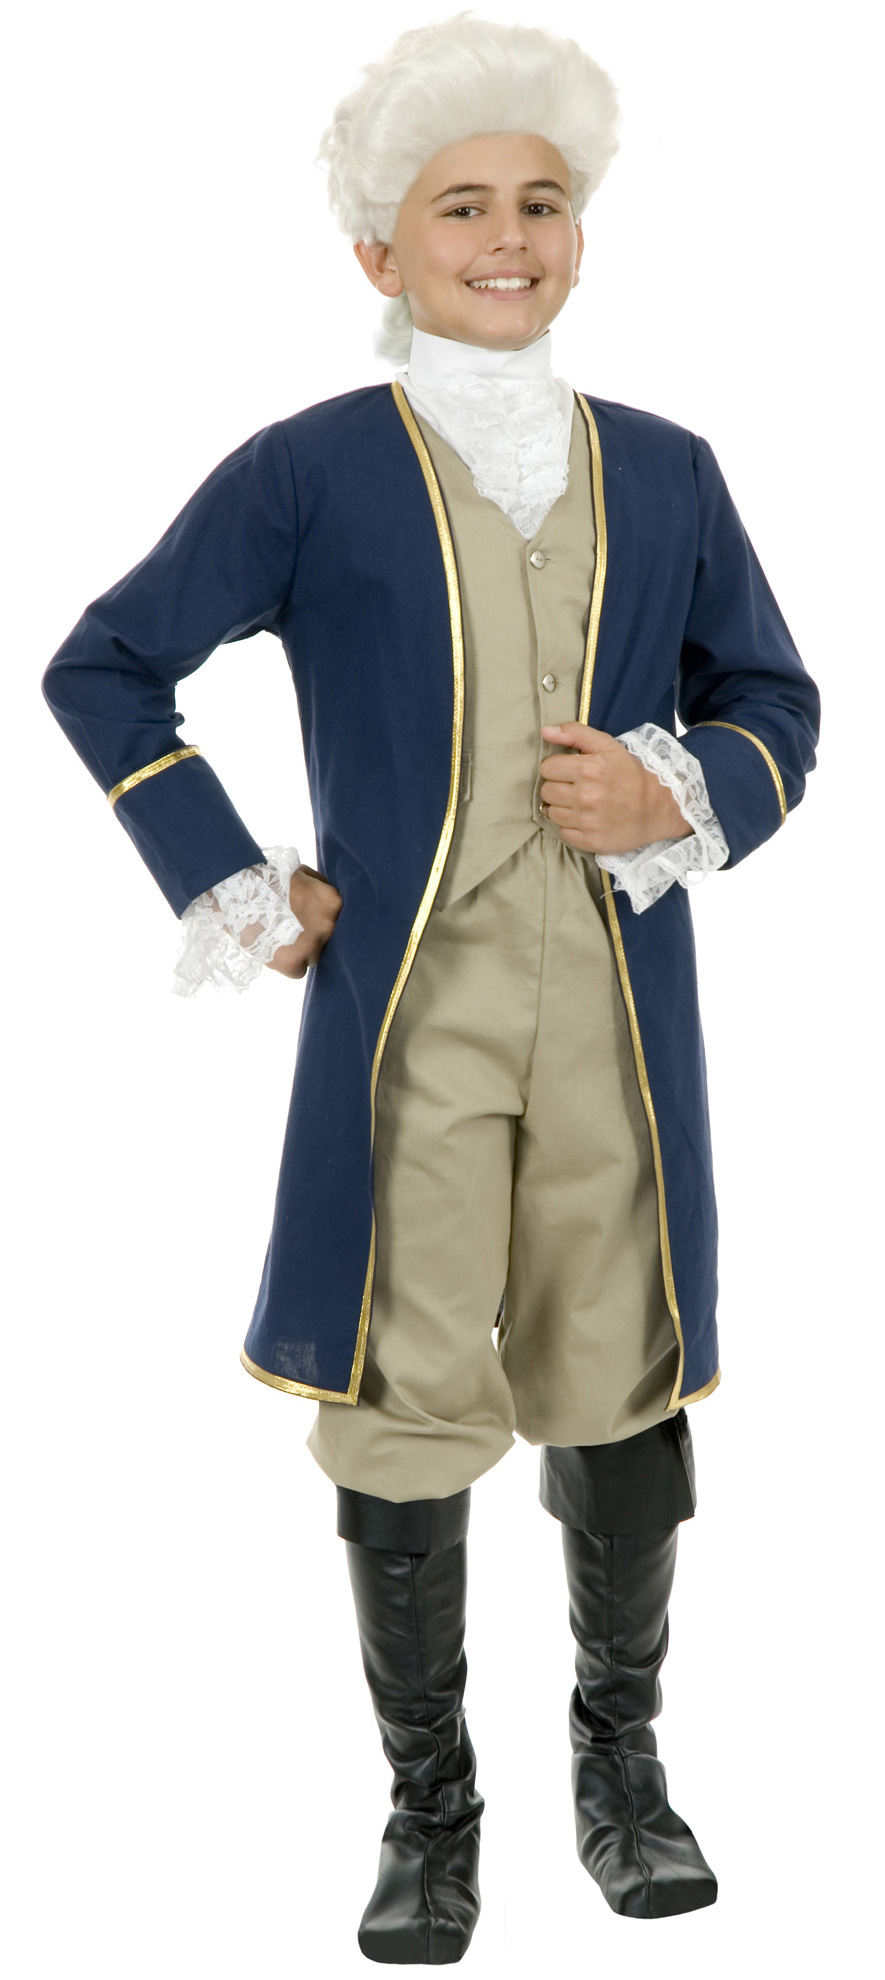 George Washington Child Costume Partybell Com